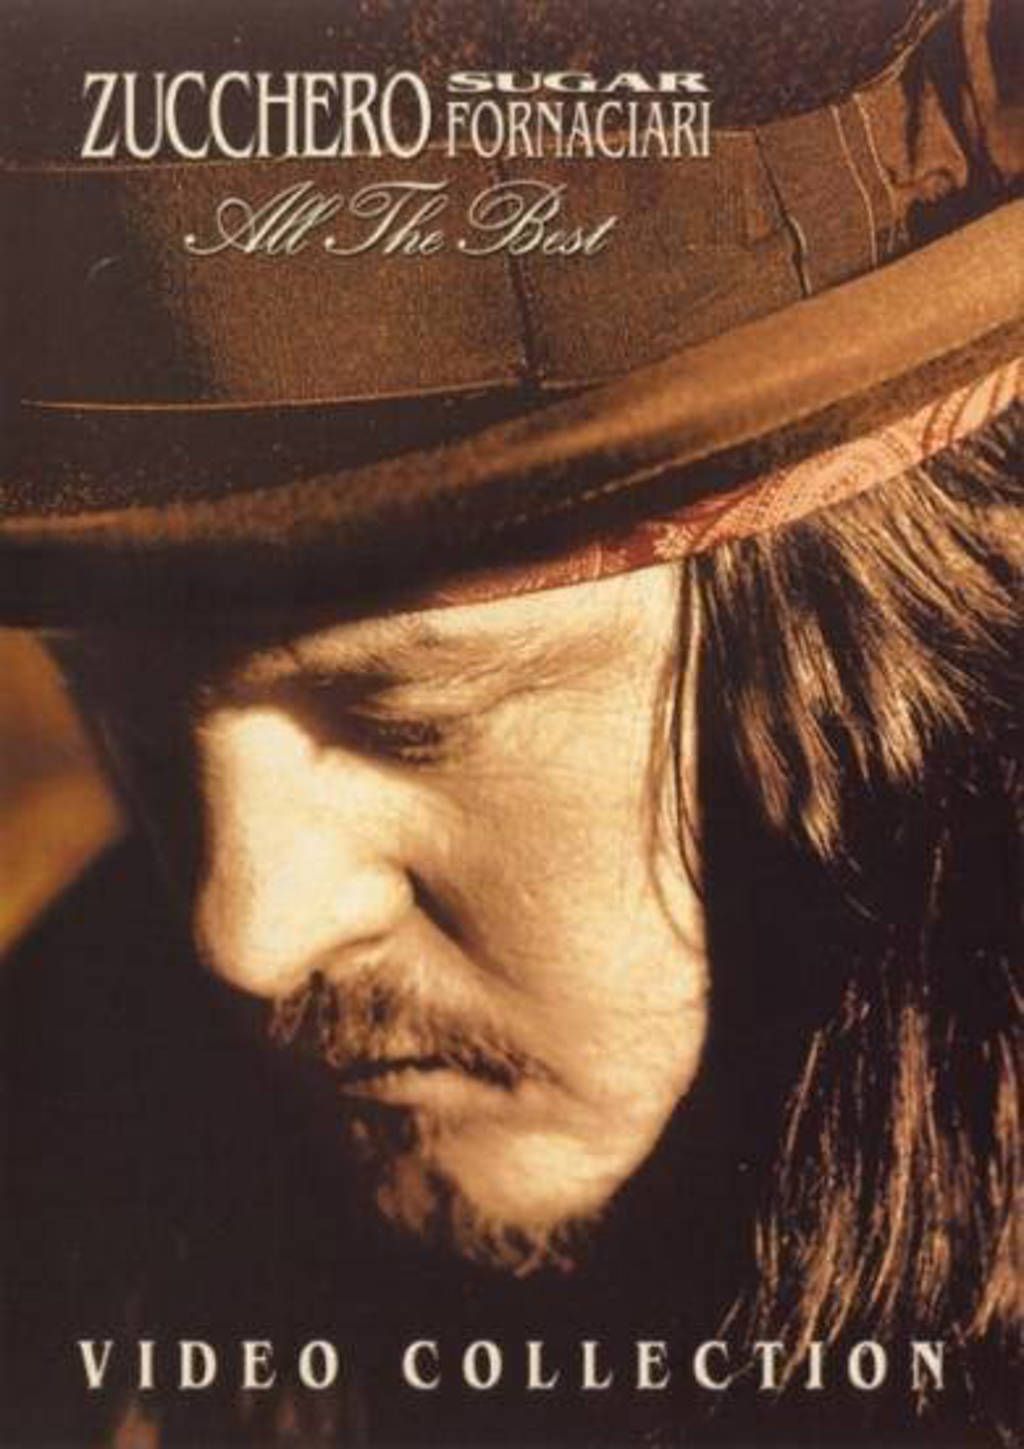 Zucchero - All the best video collection (DVD)